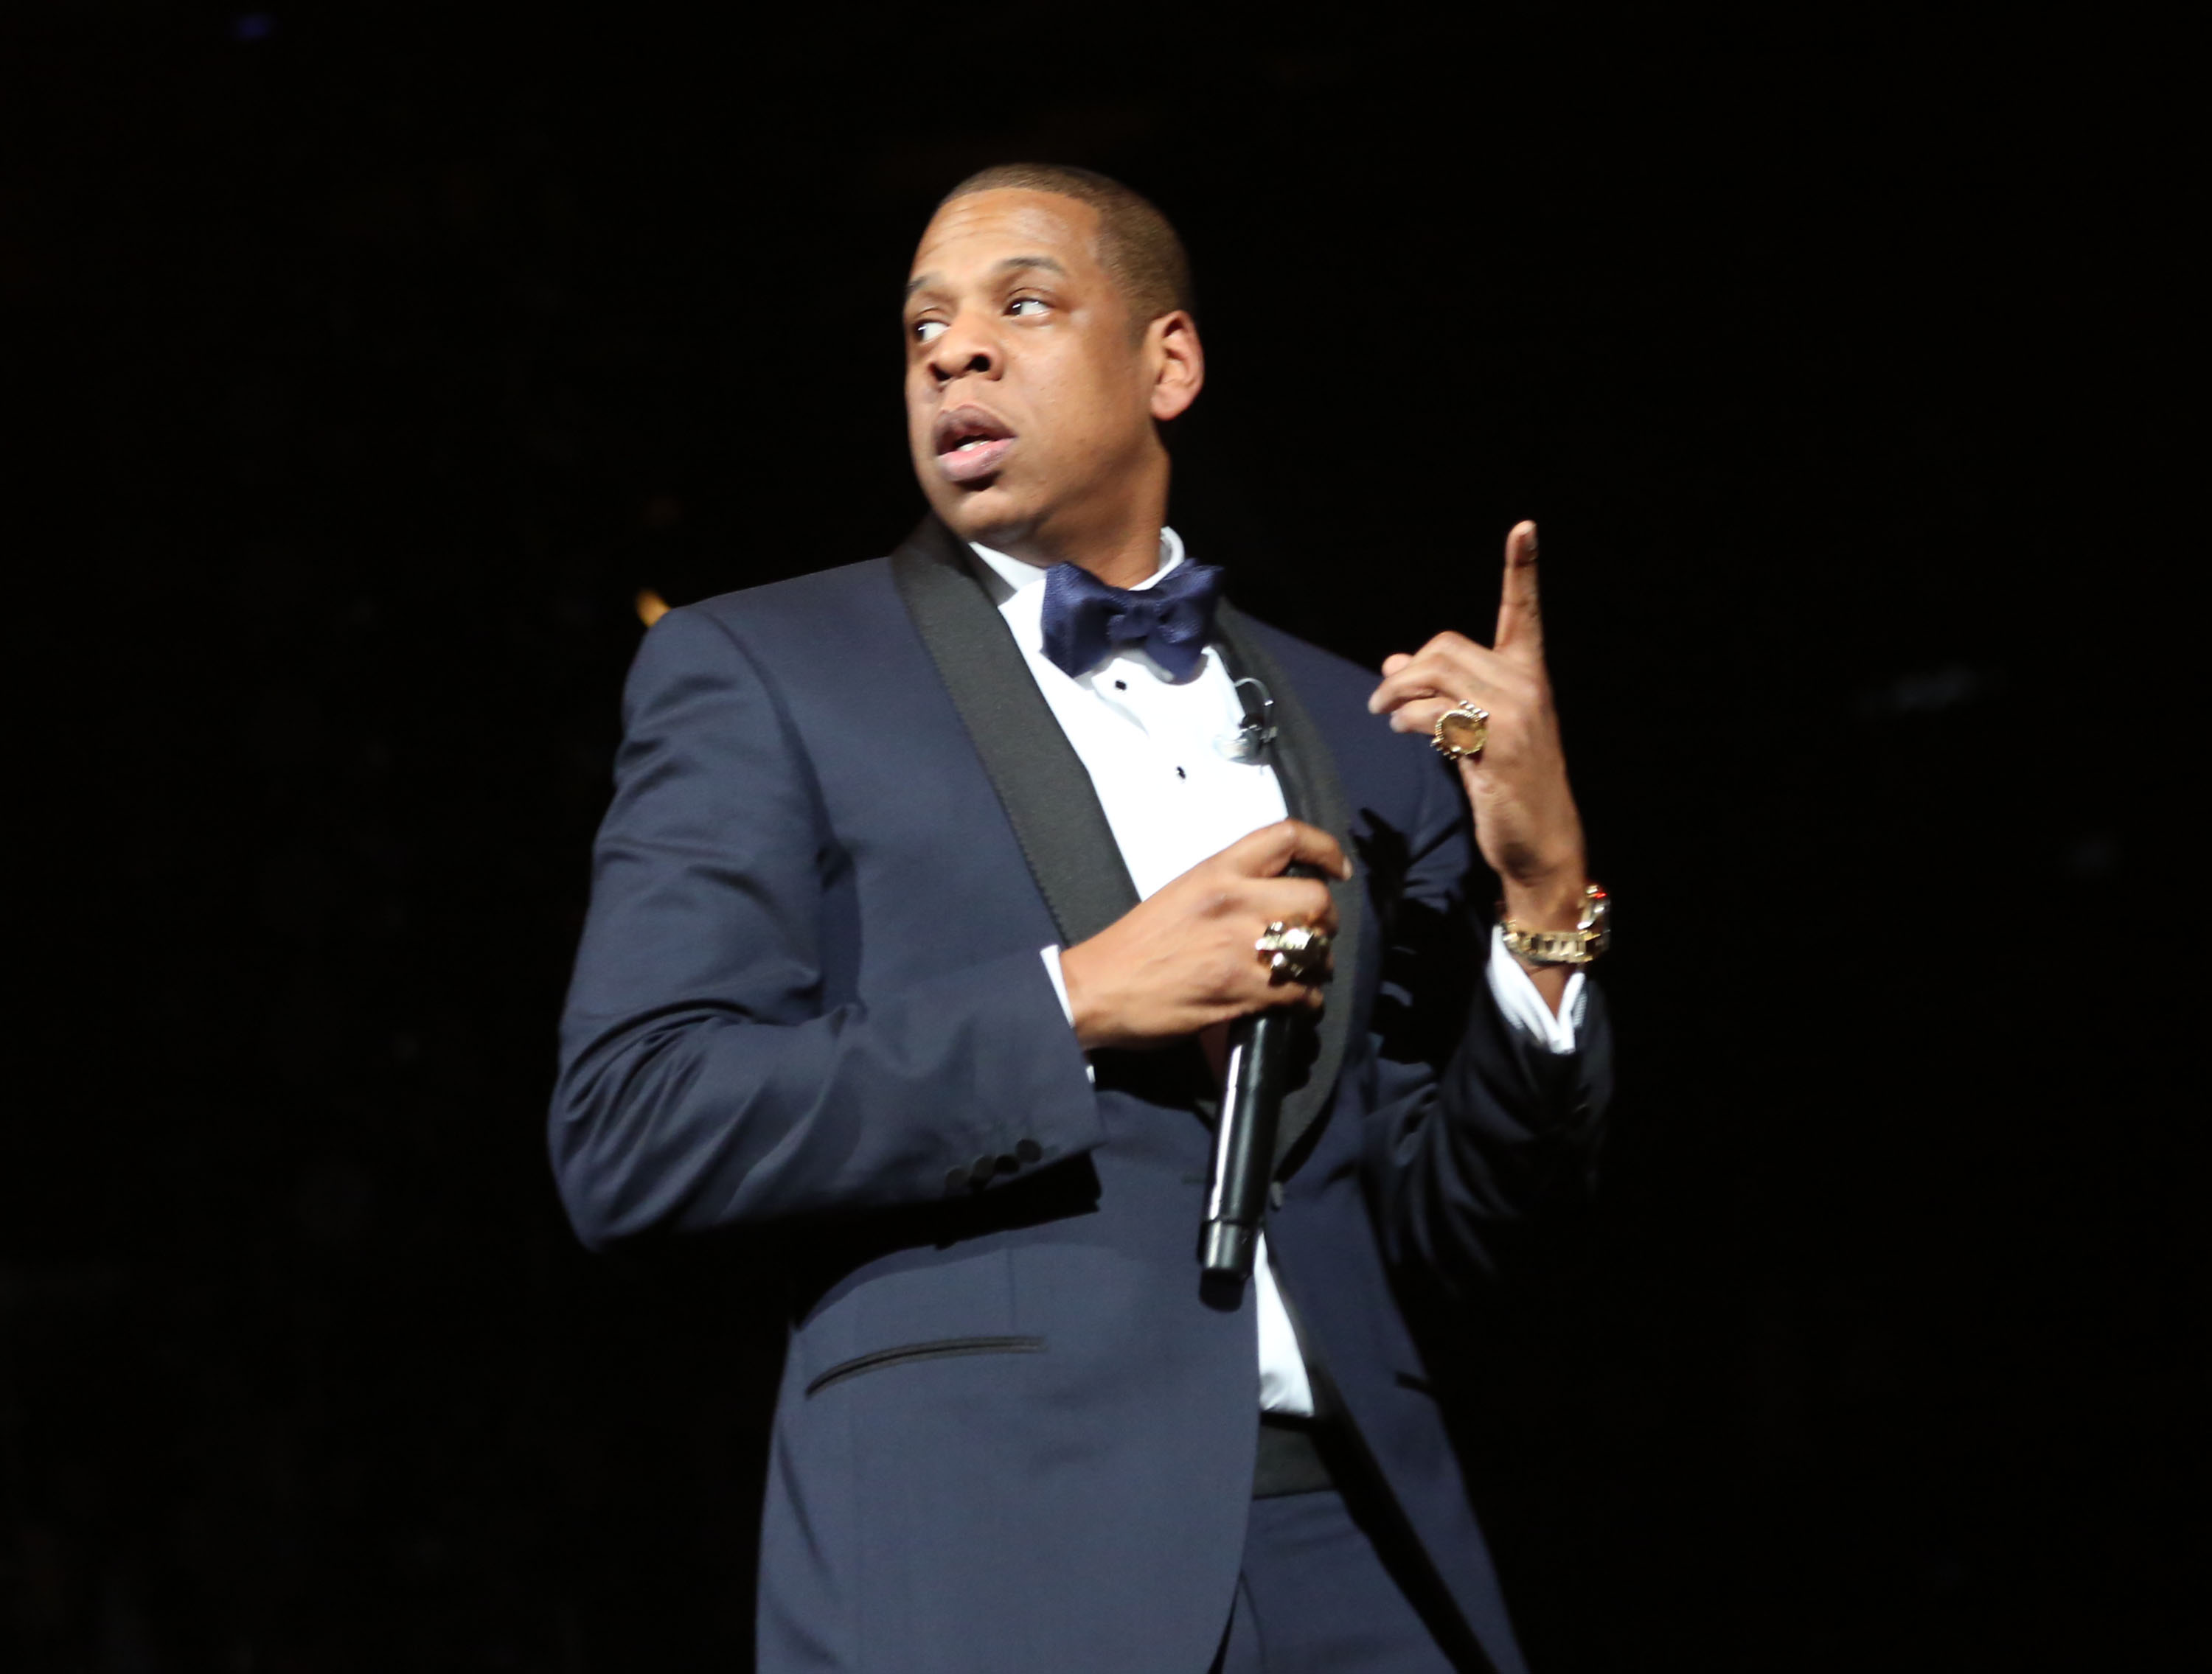 Jay-Z wore a blue and black tux.